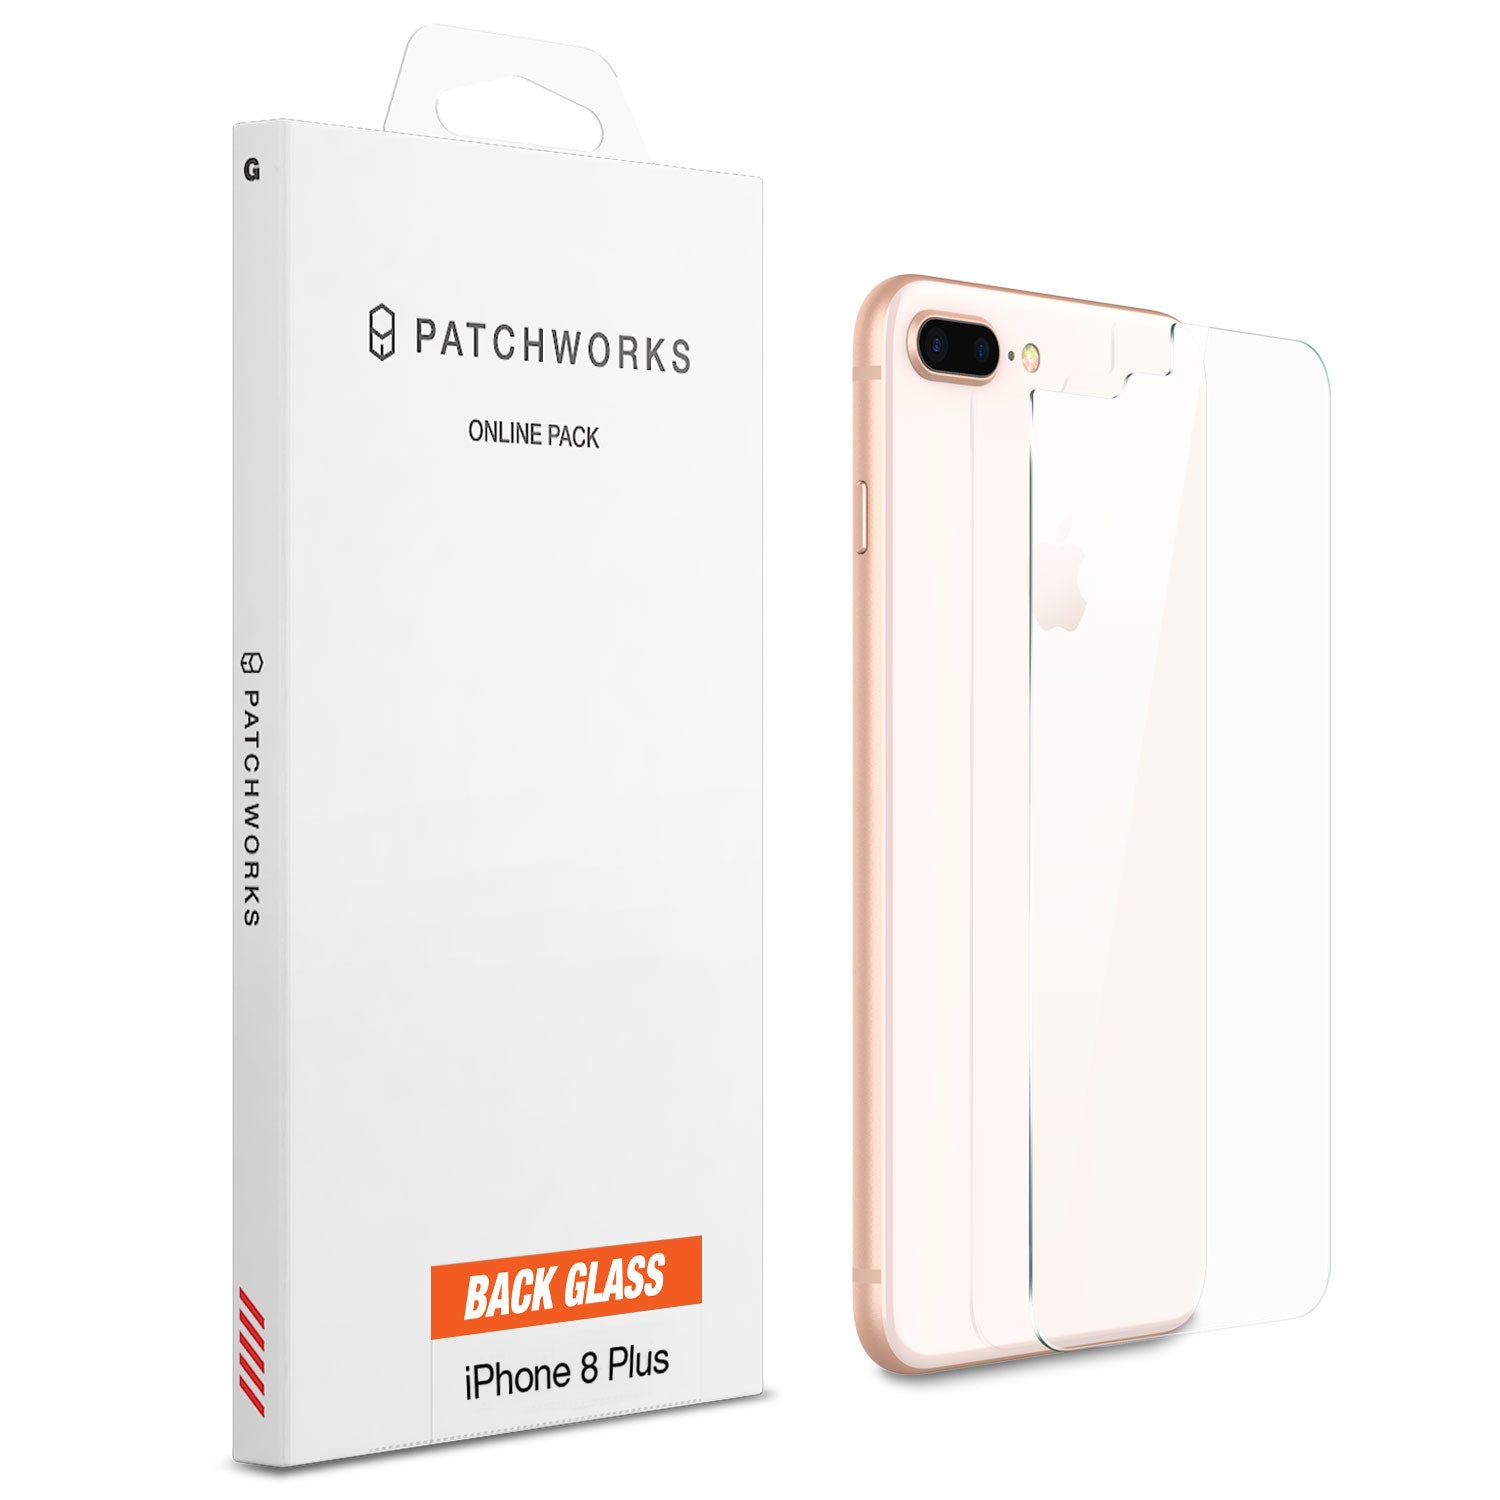 IPHONE 8 PLUS GLASS SCREEN PROTECTOR - ITG BACK GLASS